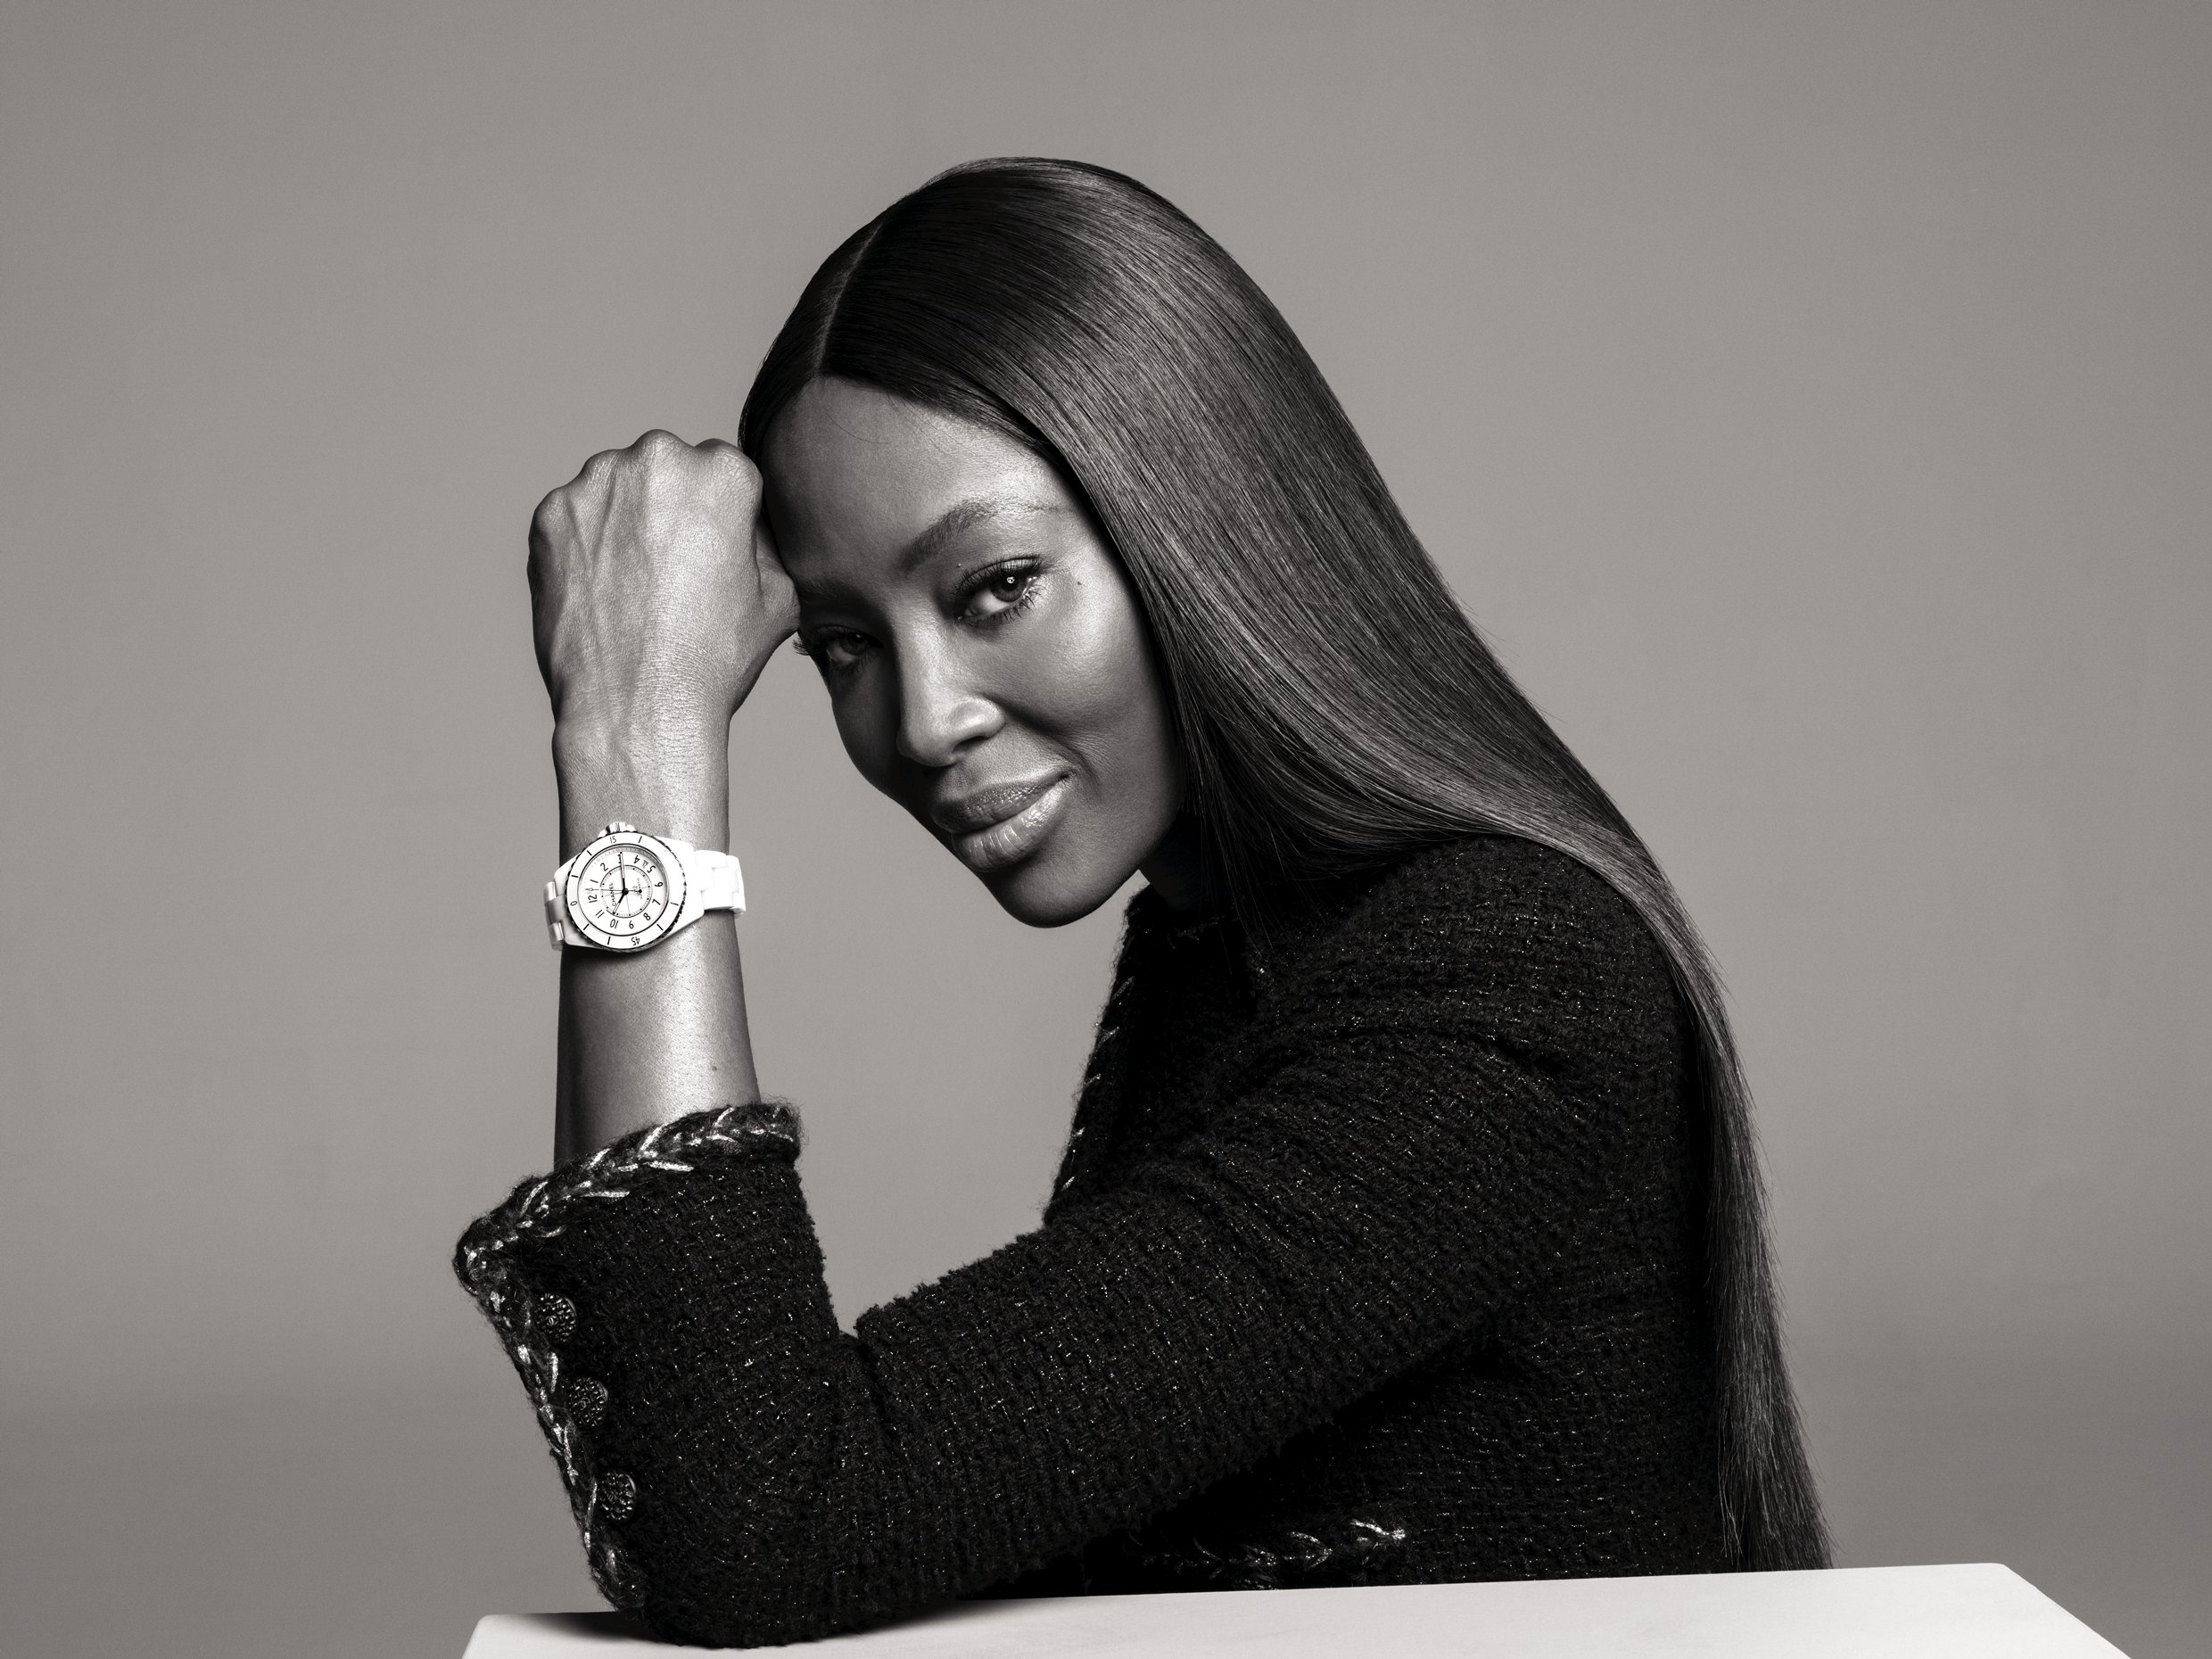 Naomi Campbell modelling the latest Chanel J12 watch